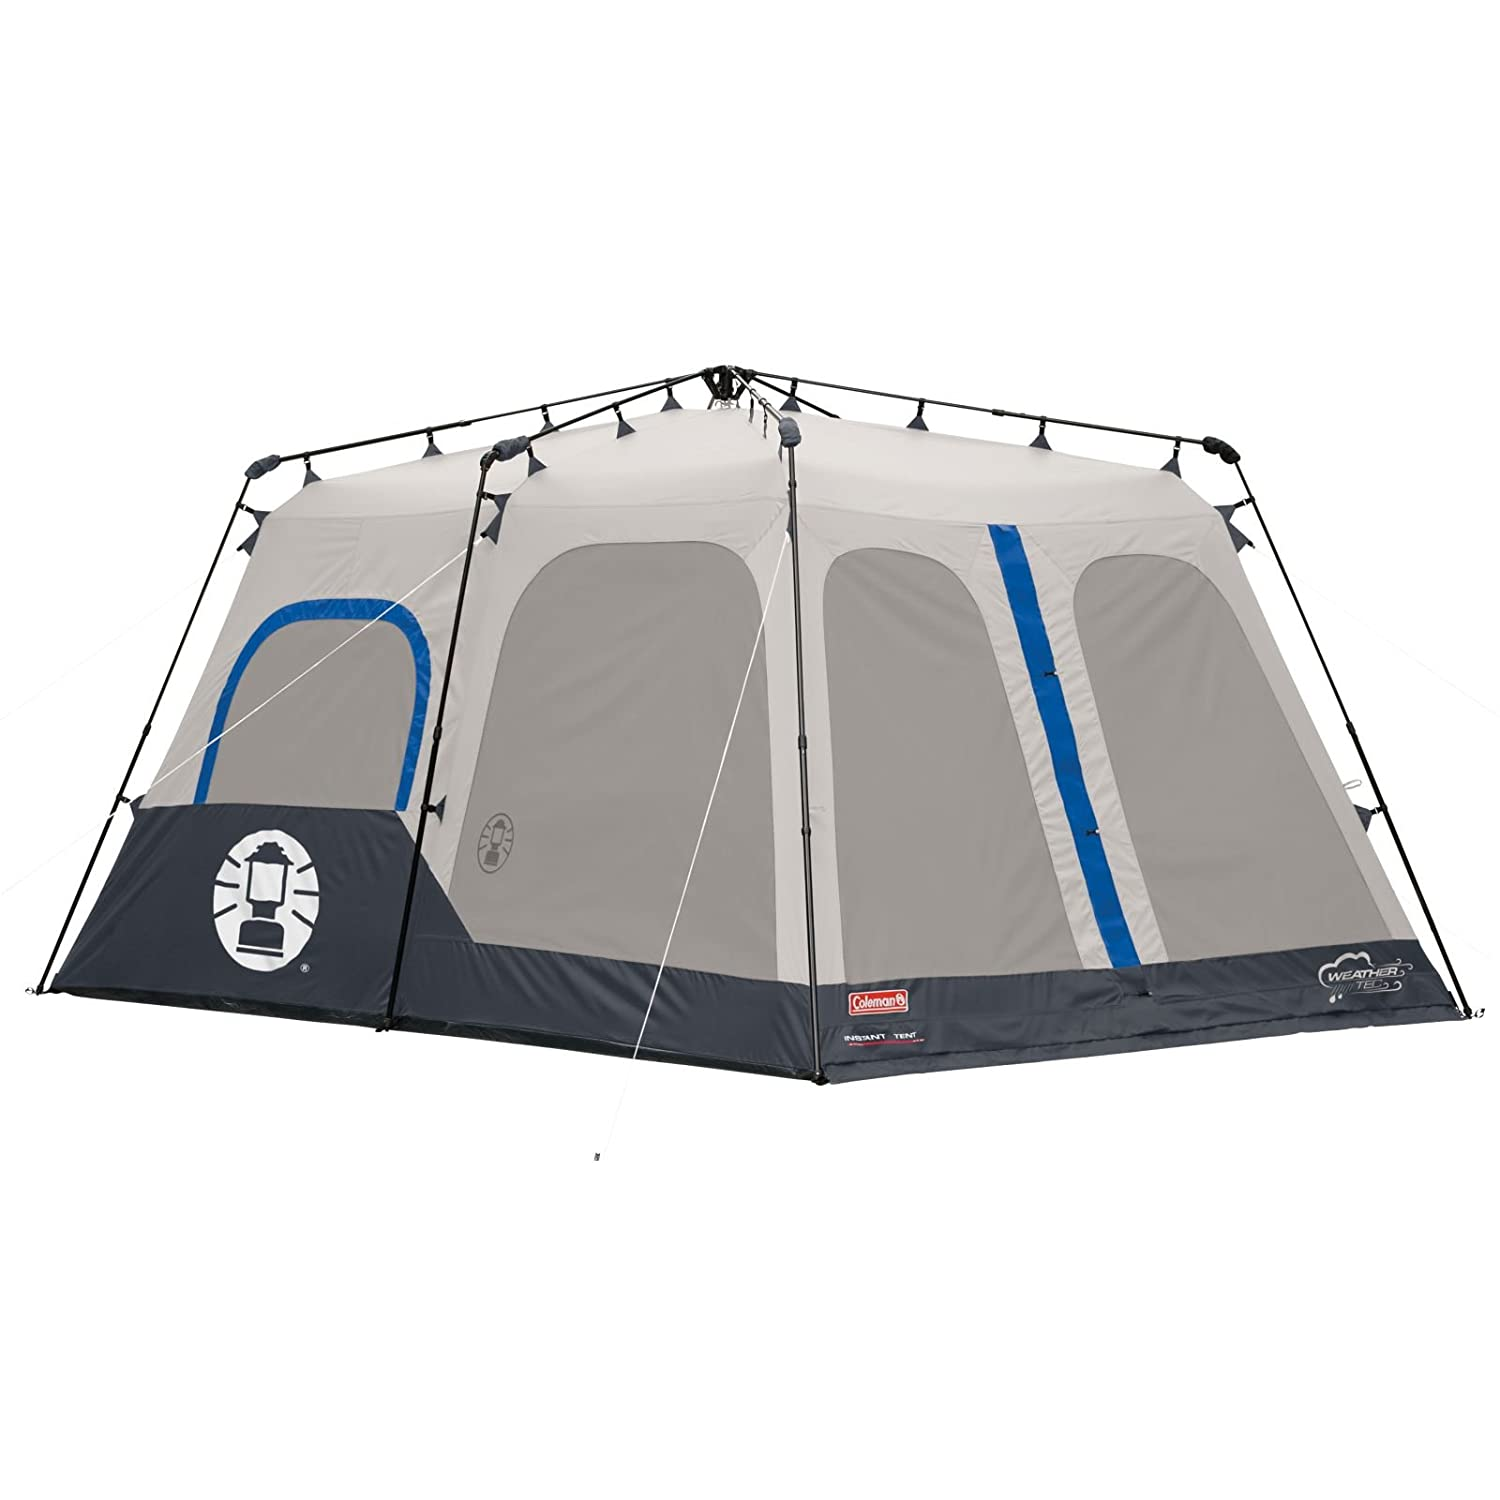 1. Best Family Tent U2013 Coleman 8 Person Instant Tent